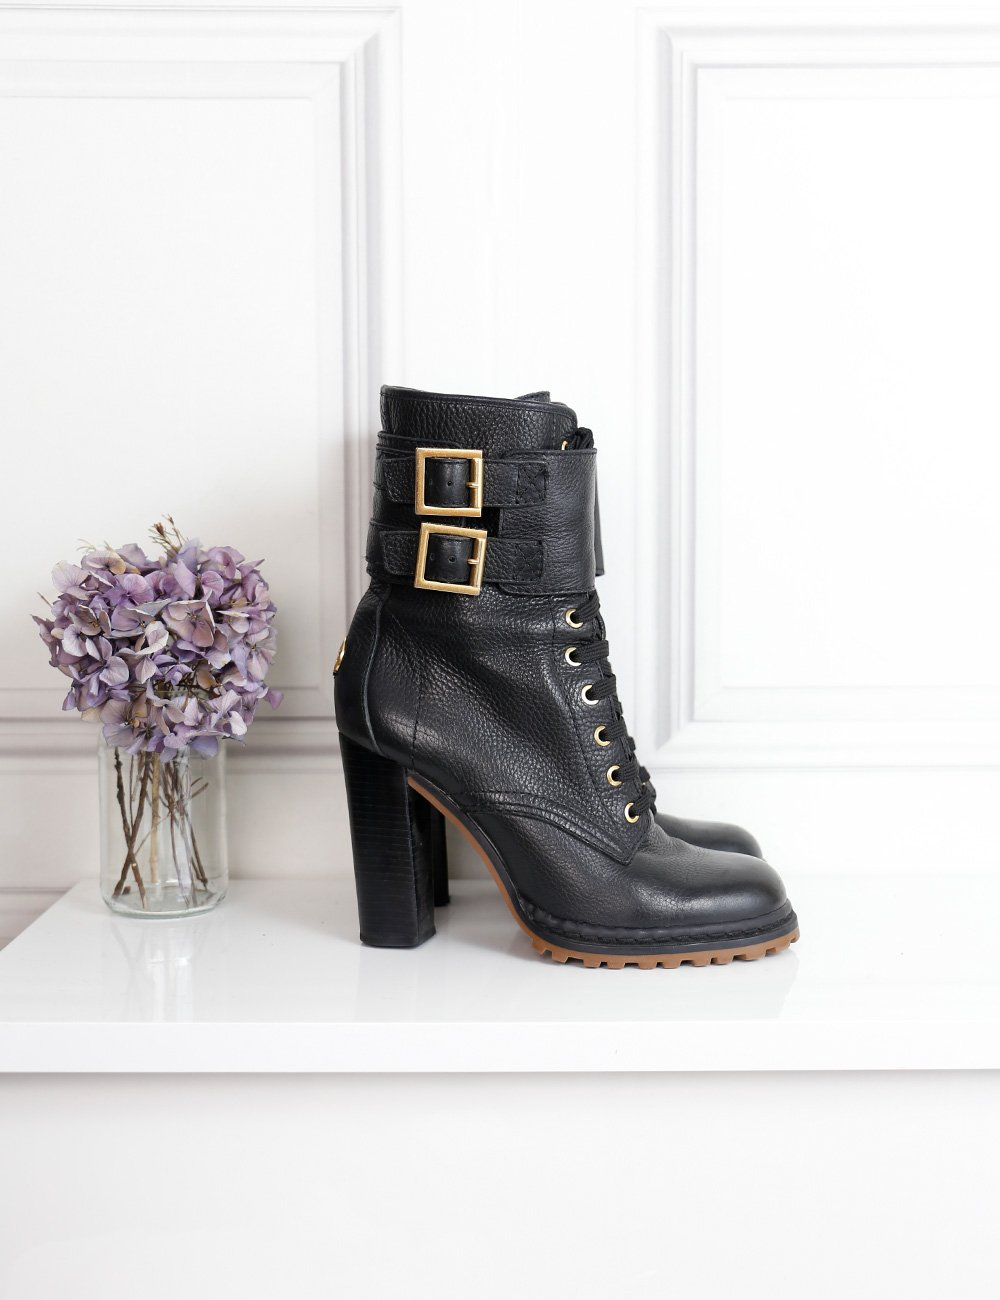 Tory Burch black lace-up boots with chunky heels 6.5Uk- My Wardrobe Mistakes